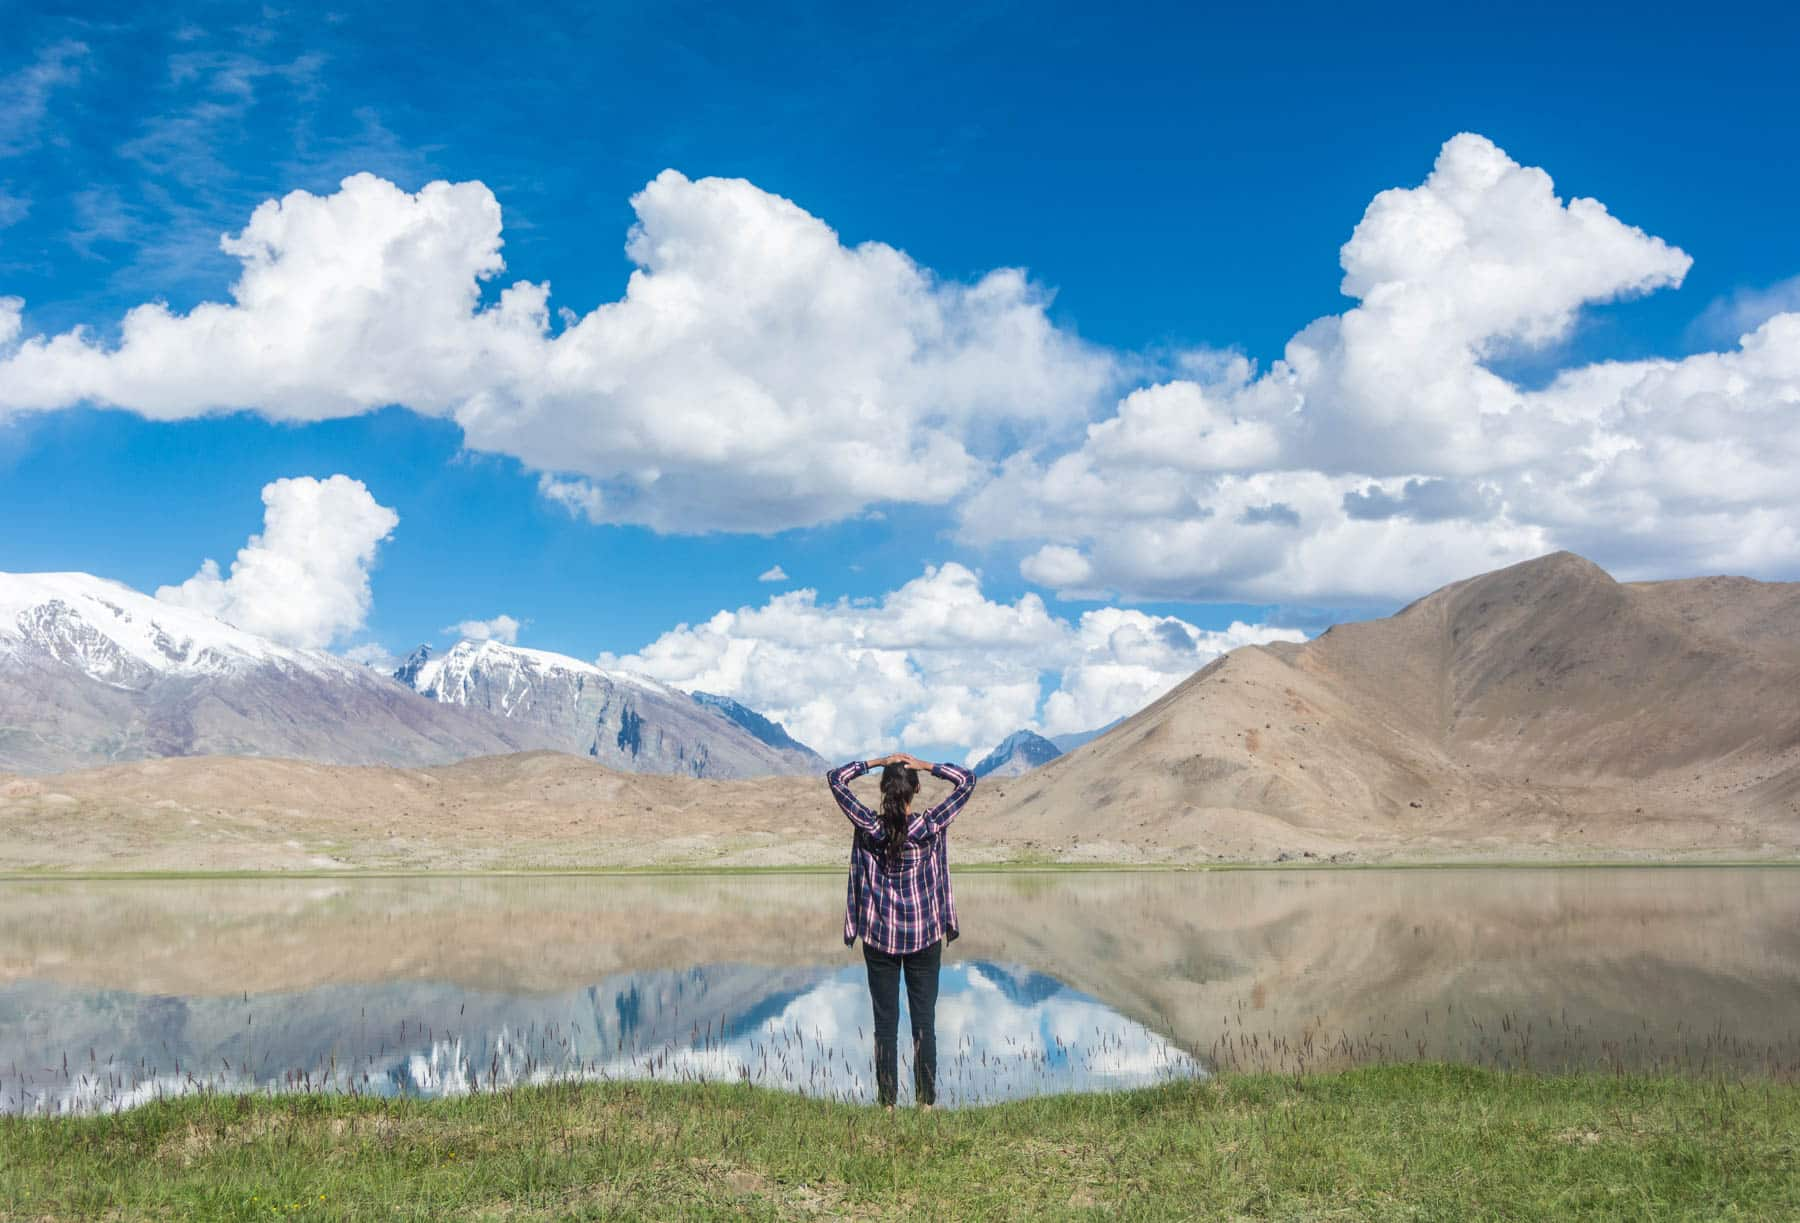 Why you need to purchase travel insurance - Looking at Karakul Lake in Xinjiang province, China - Lost With Purpose travel blog